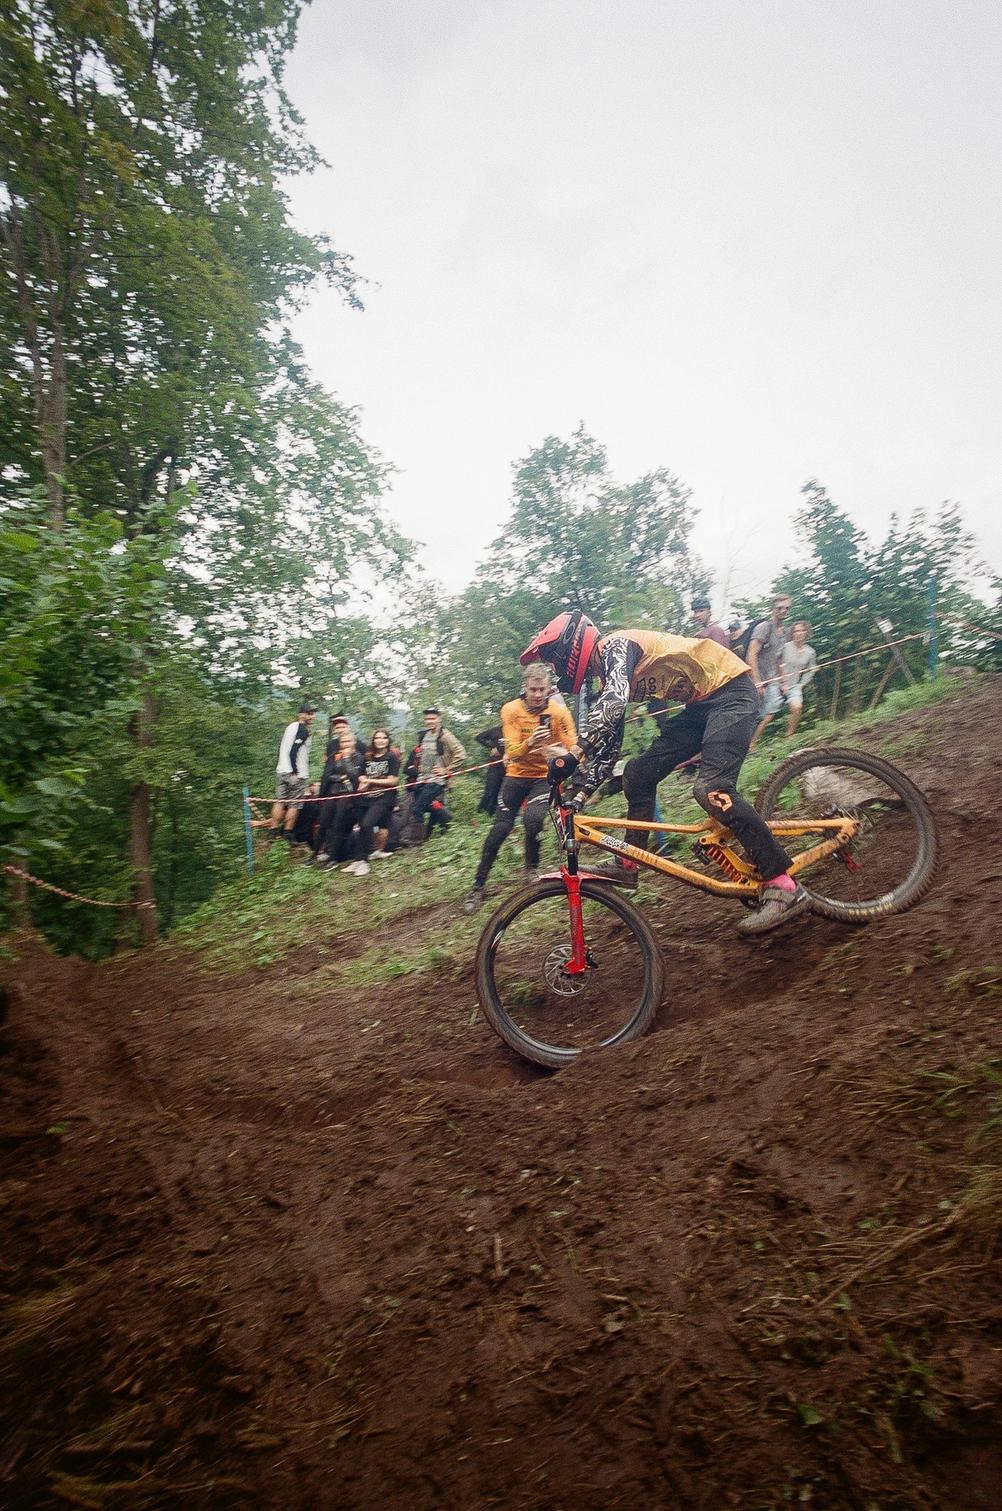 Downhill racer about to ride a natural berm it wet conditions.